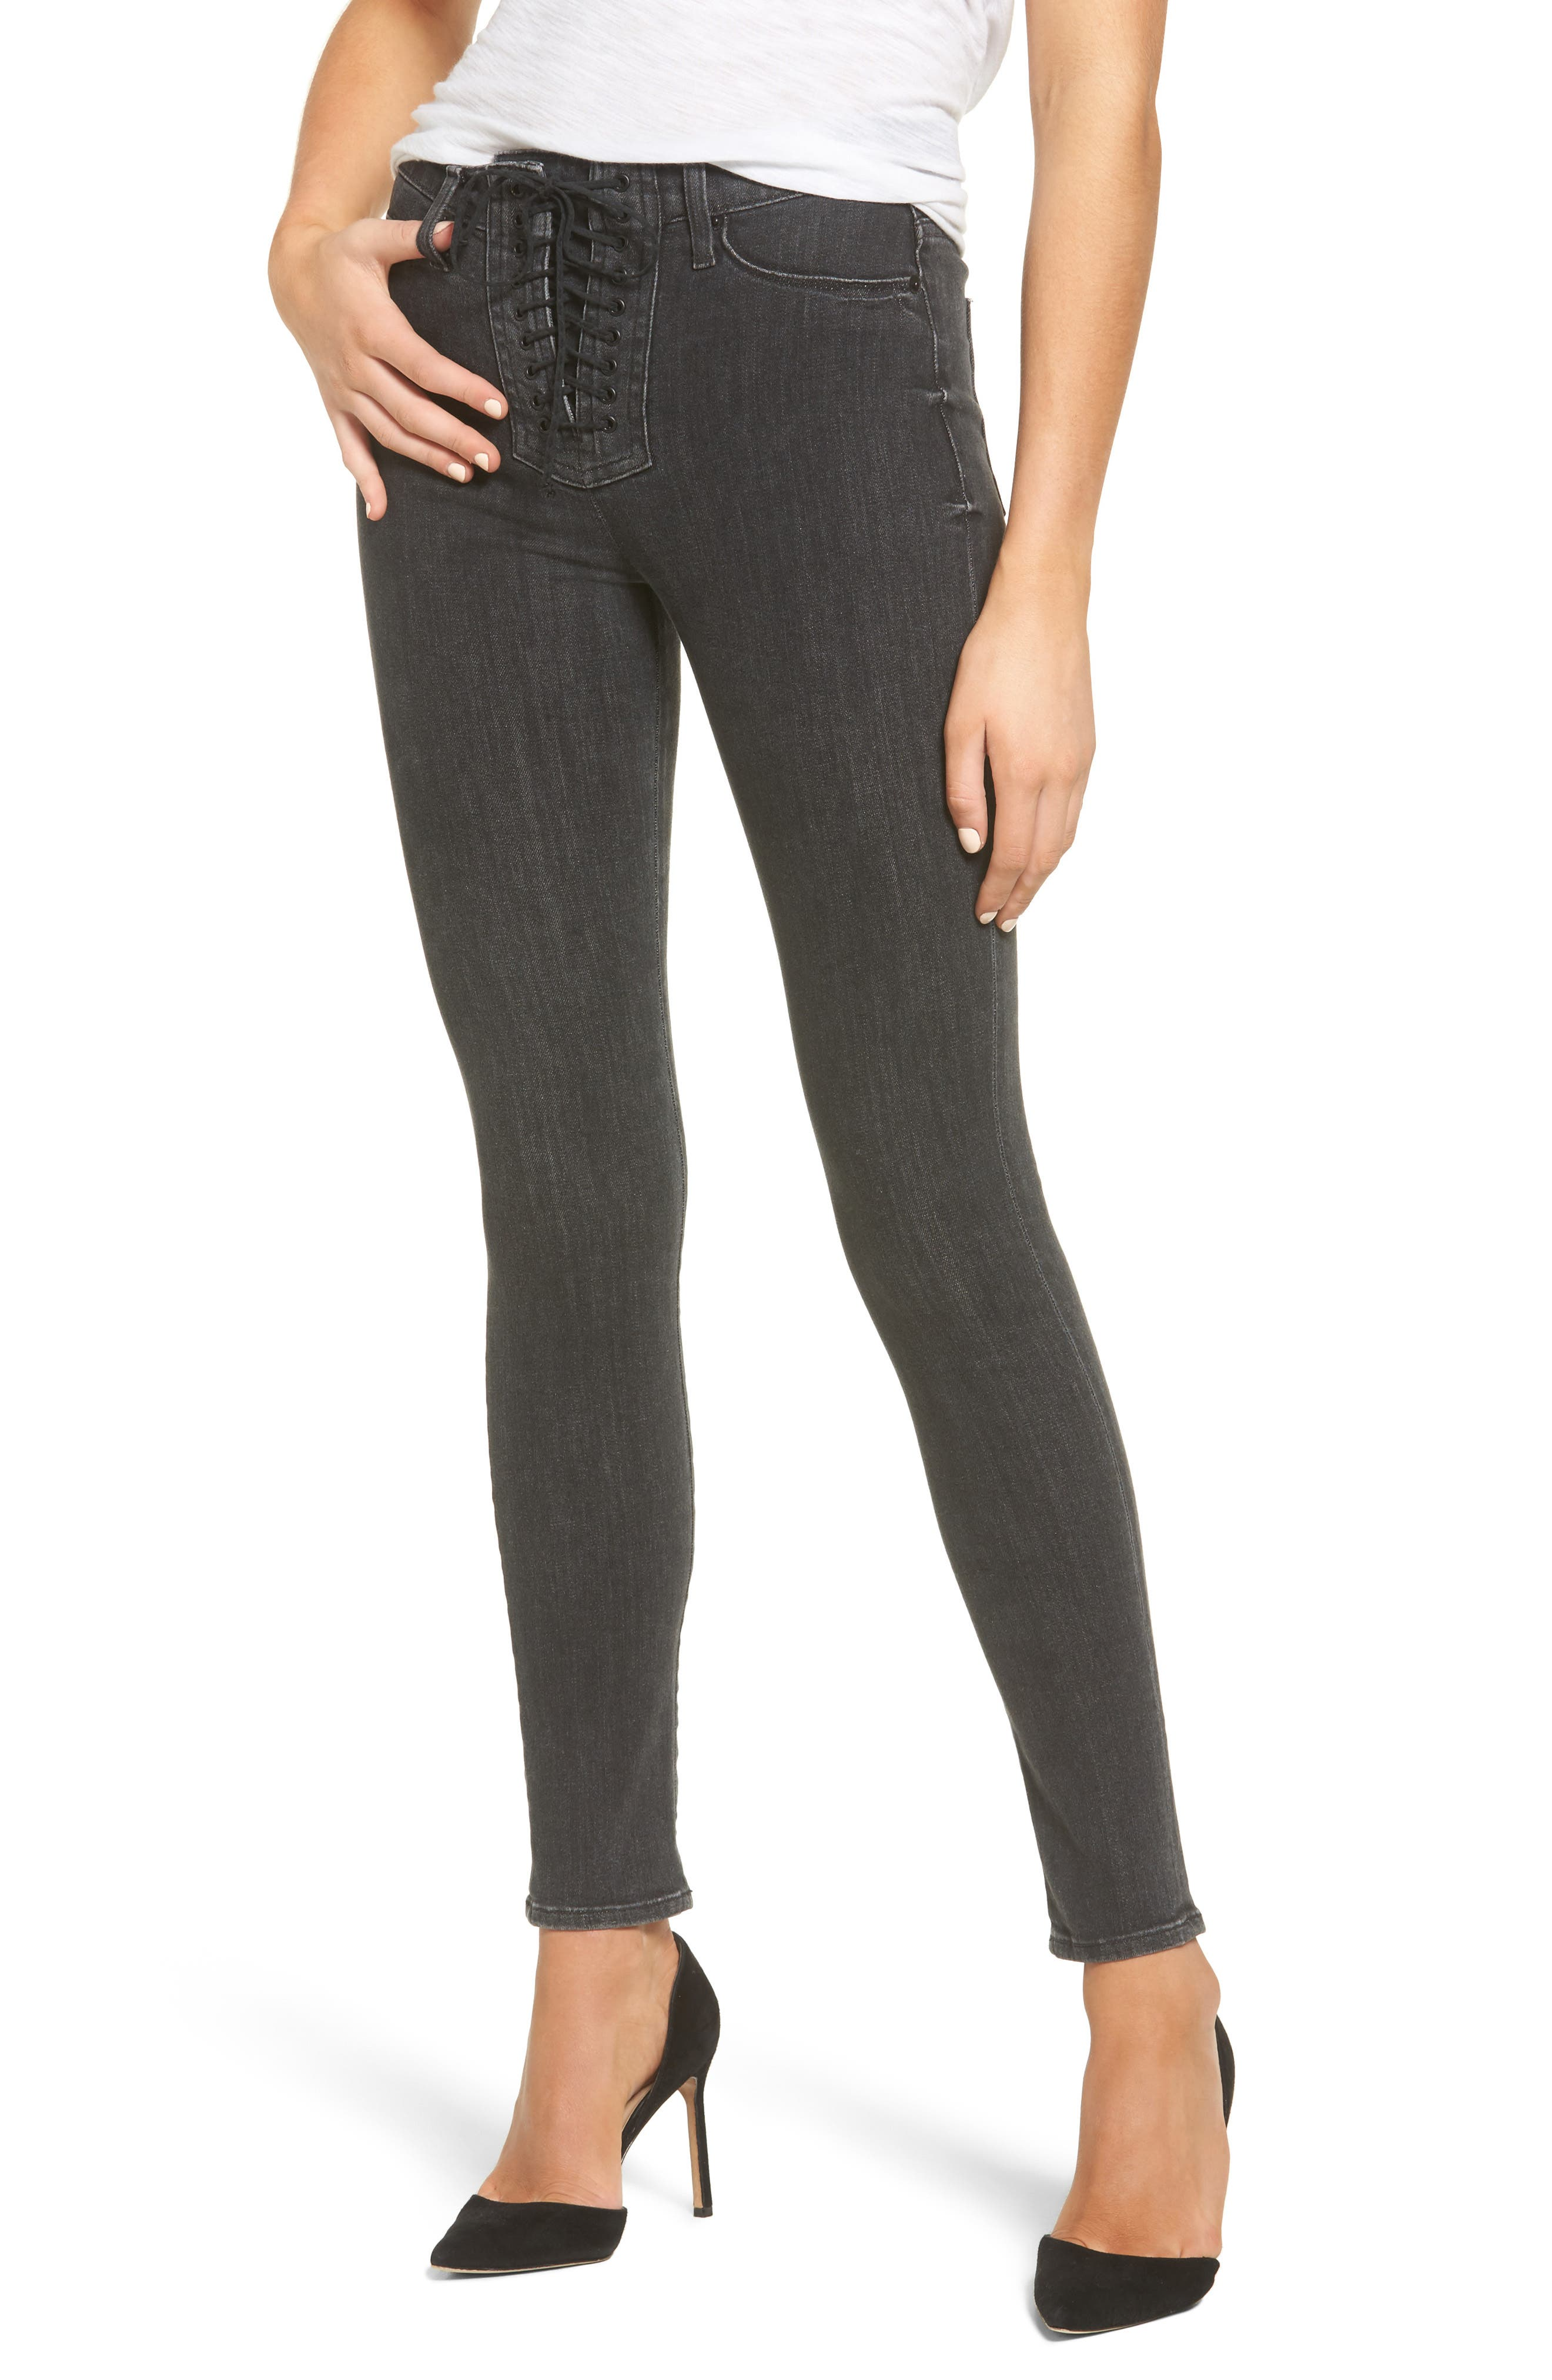 Bullocks High Waist Lace-Up Skinny Jeans,                             Main thumbnail 1, color,                             Vacancy